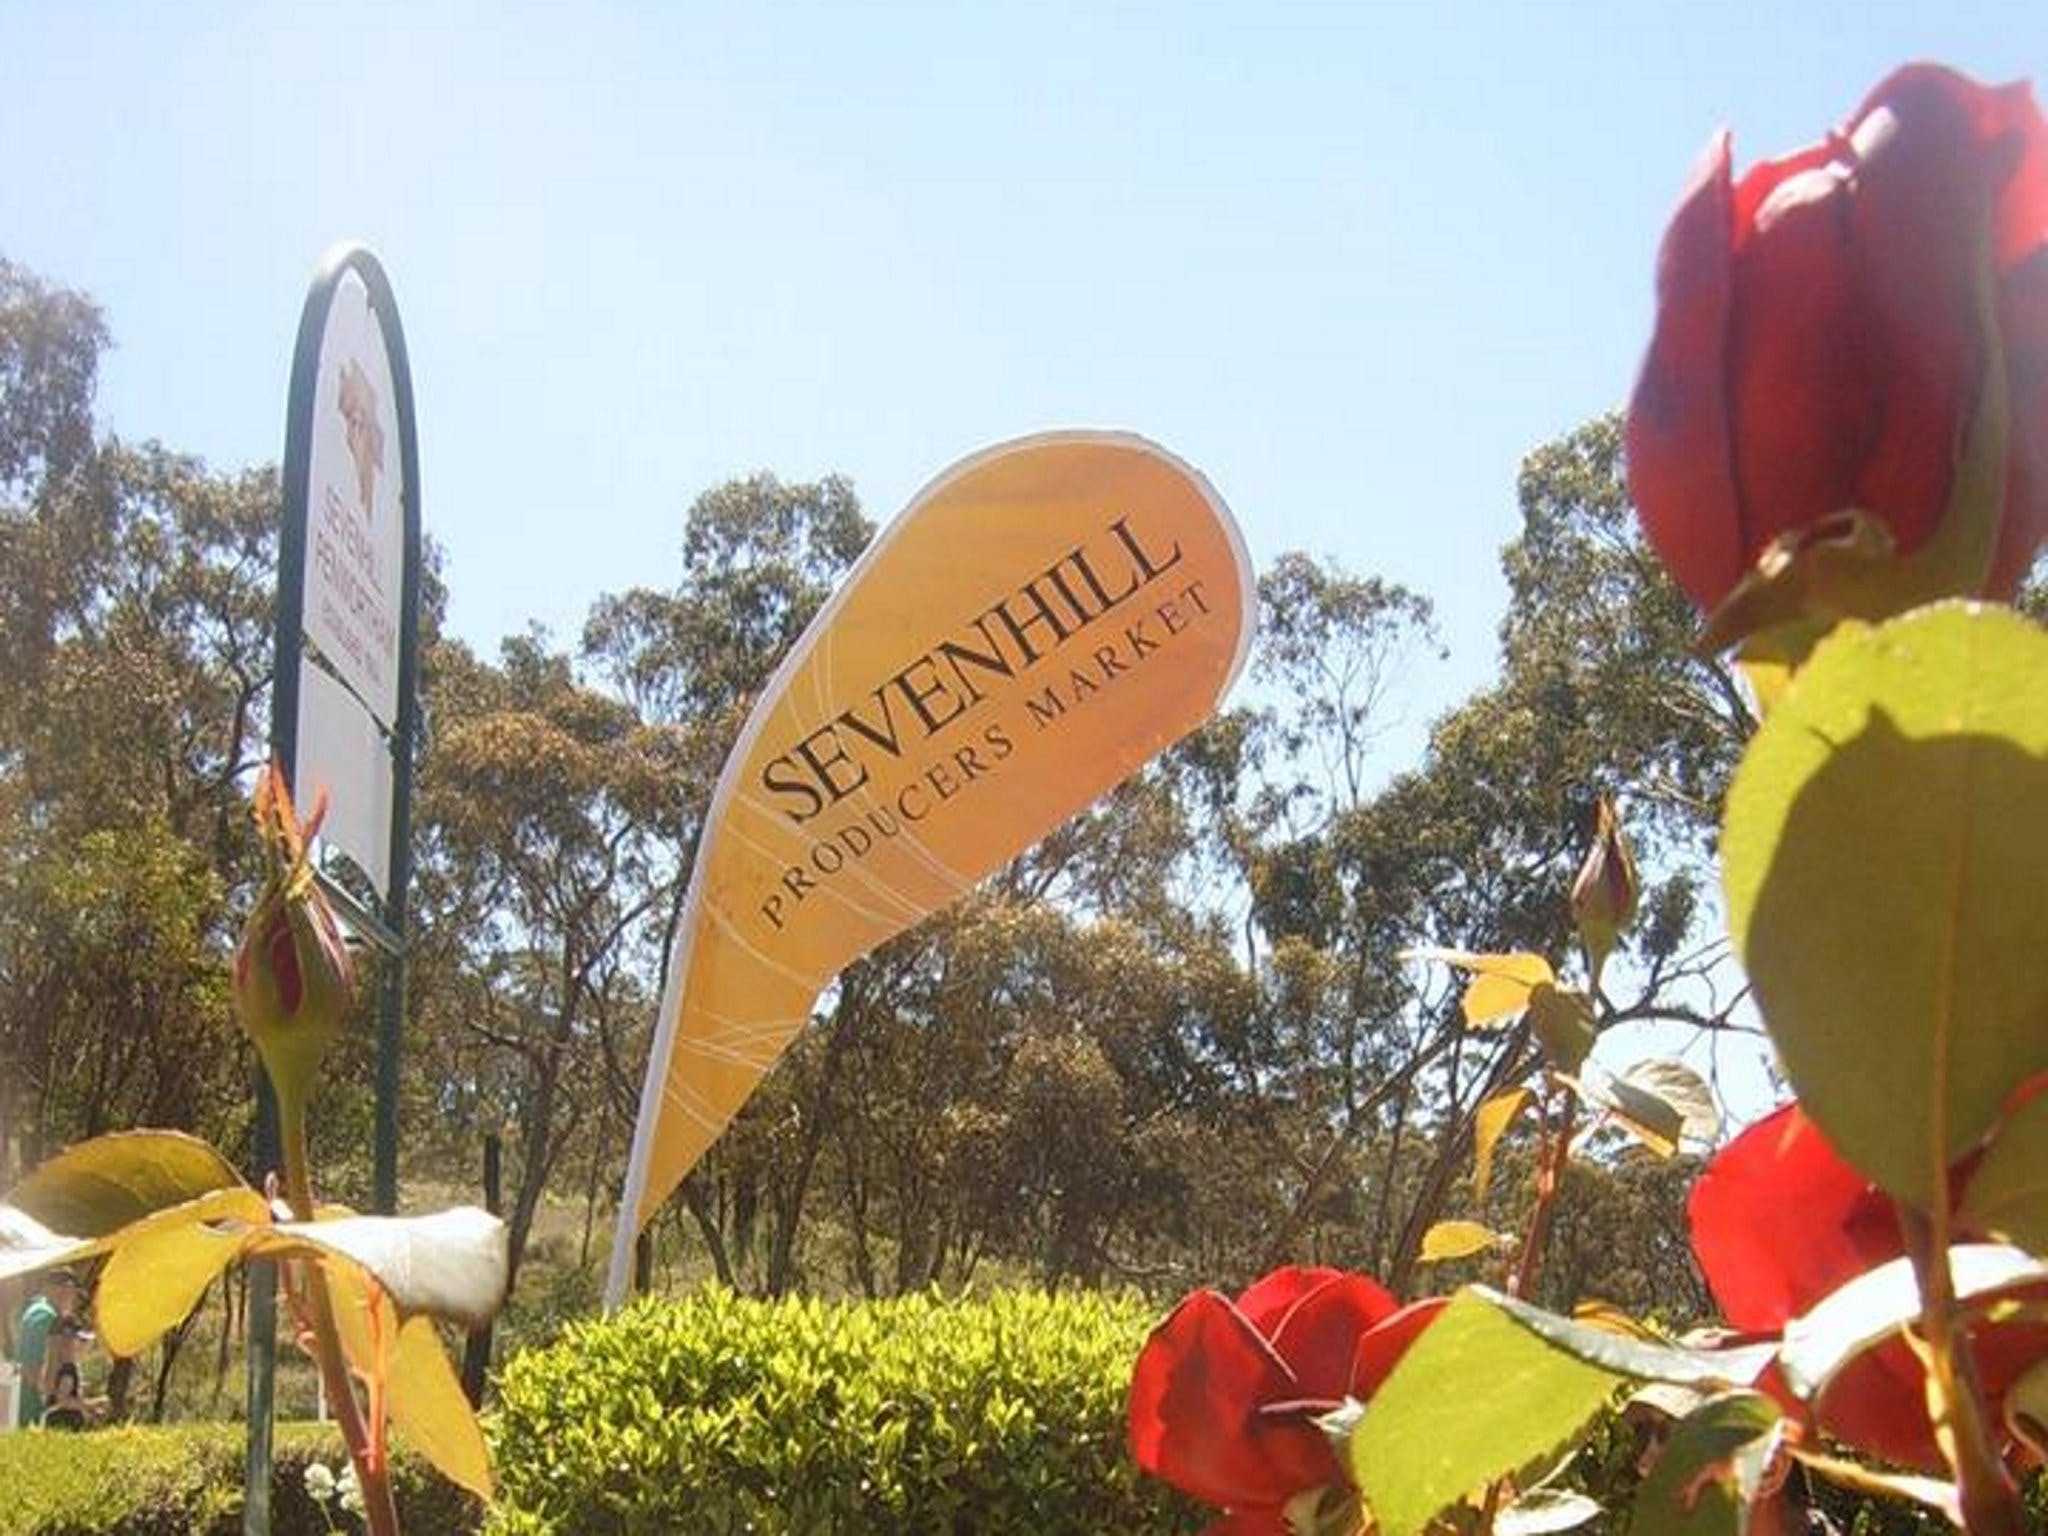 Sevenhill Producers Market - New South Wales Tourism